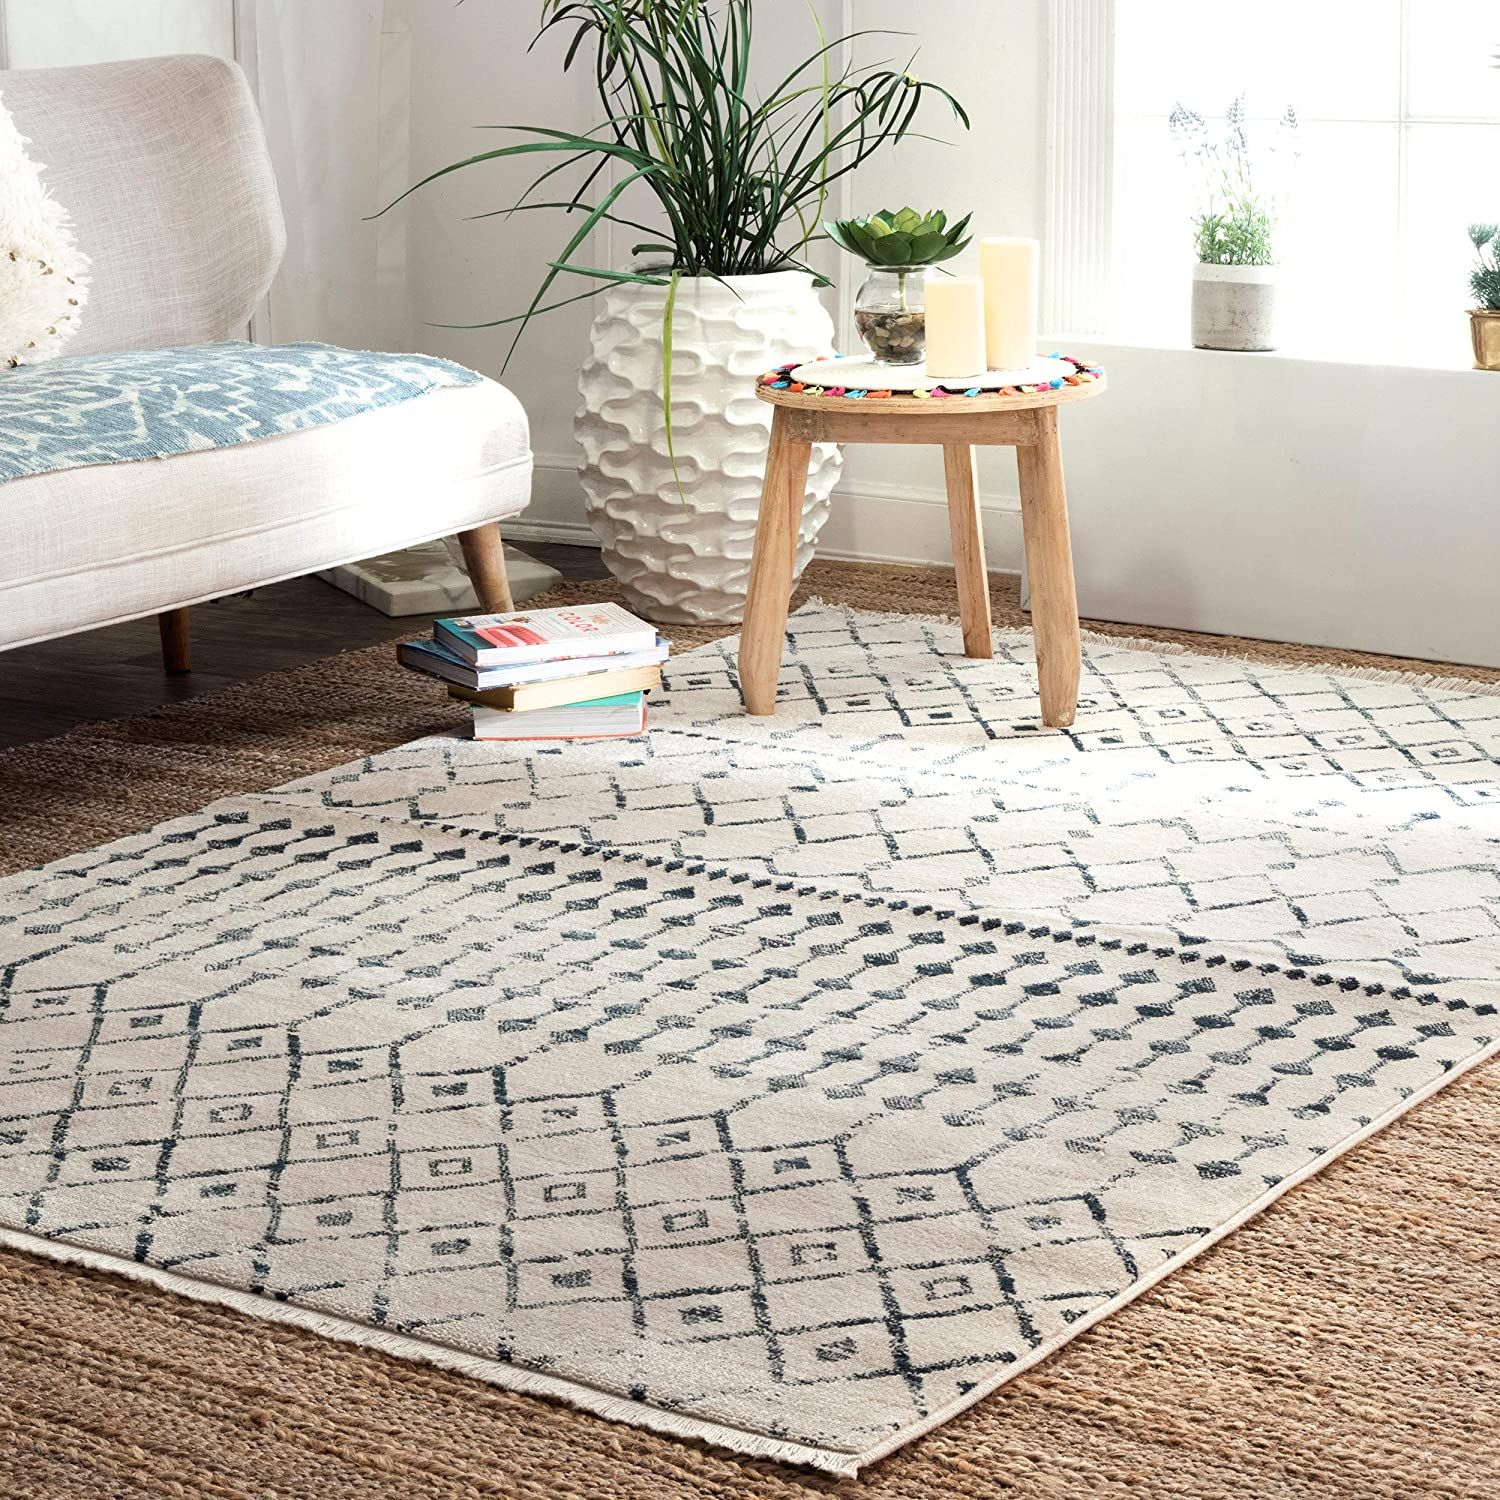 nuLOOM Kristi Vintage Moroccan Area Rug Beige 6' OFFicial x SEAL limited product 4